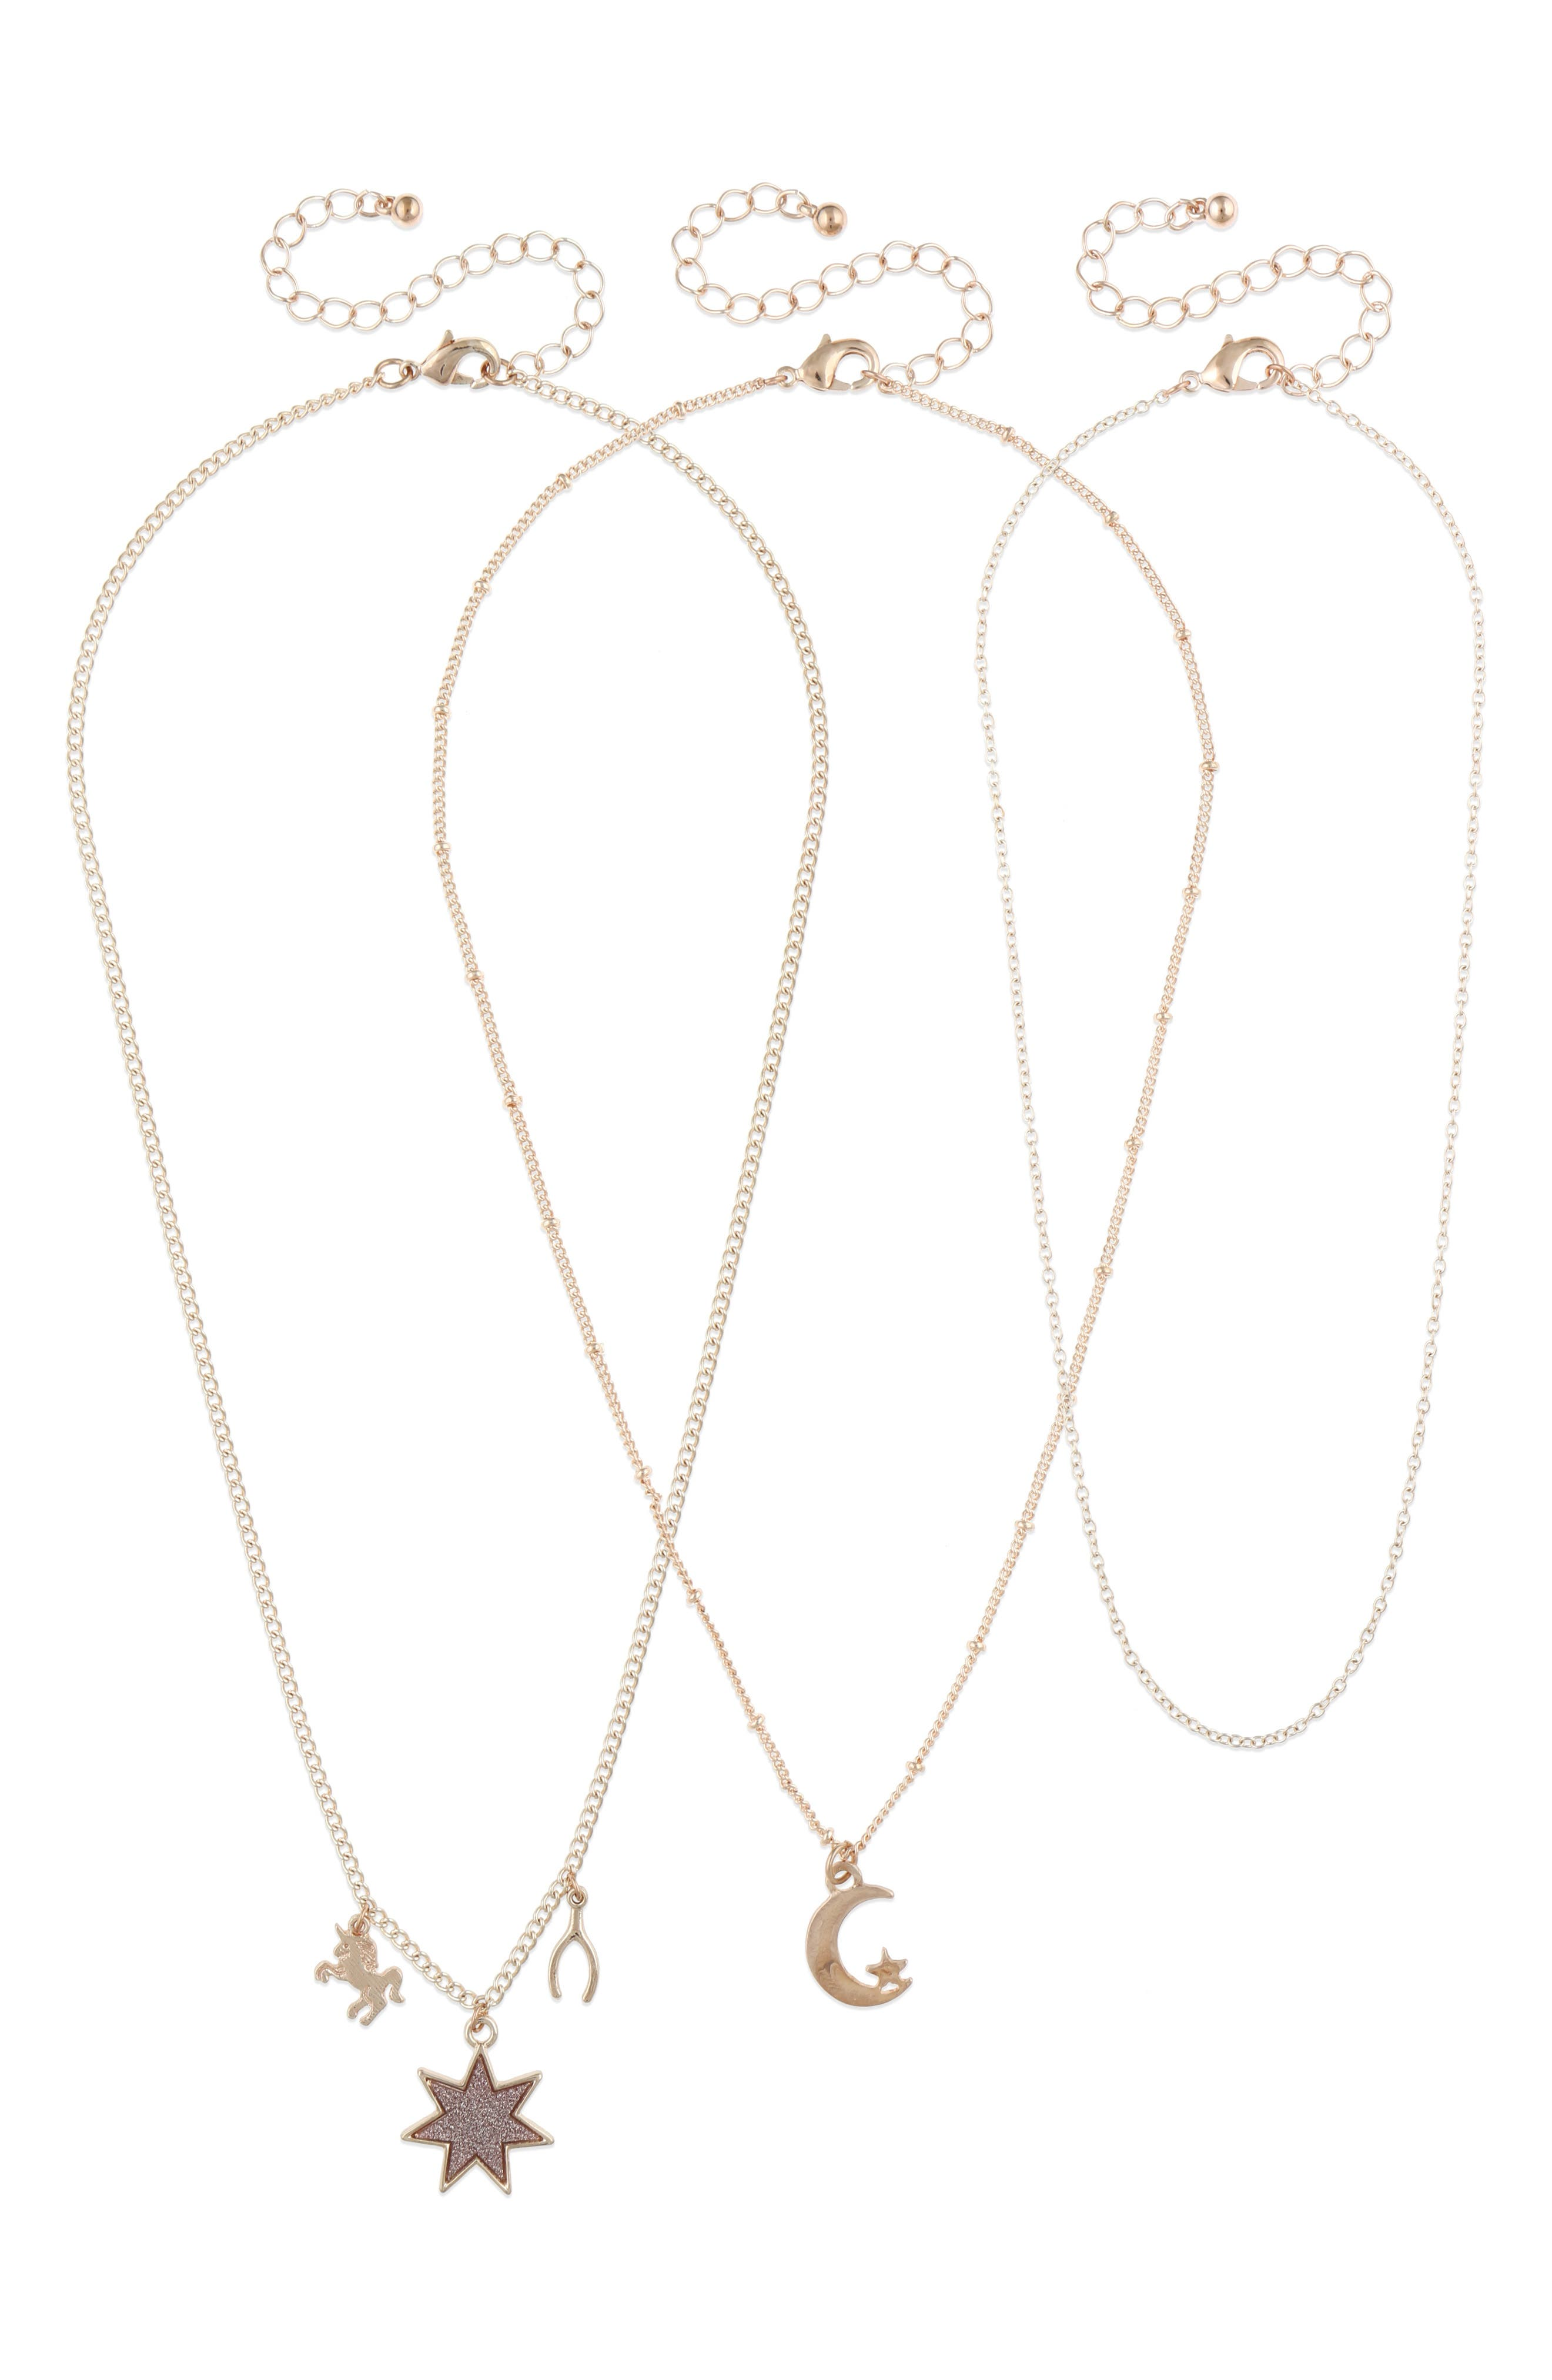 Set of 3 Charm Necklaces,                         Main,                         color, ROSE GOLD